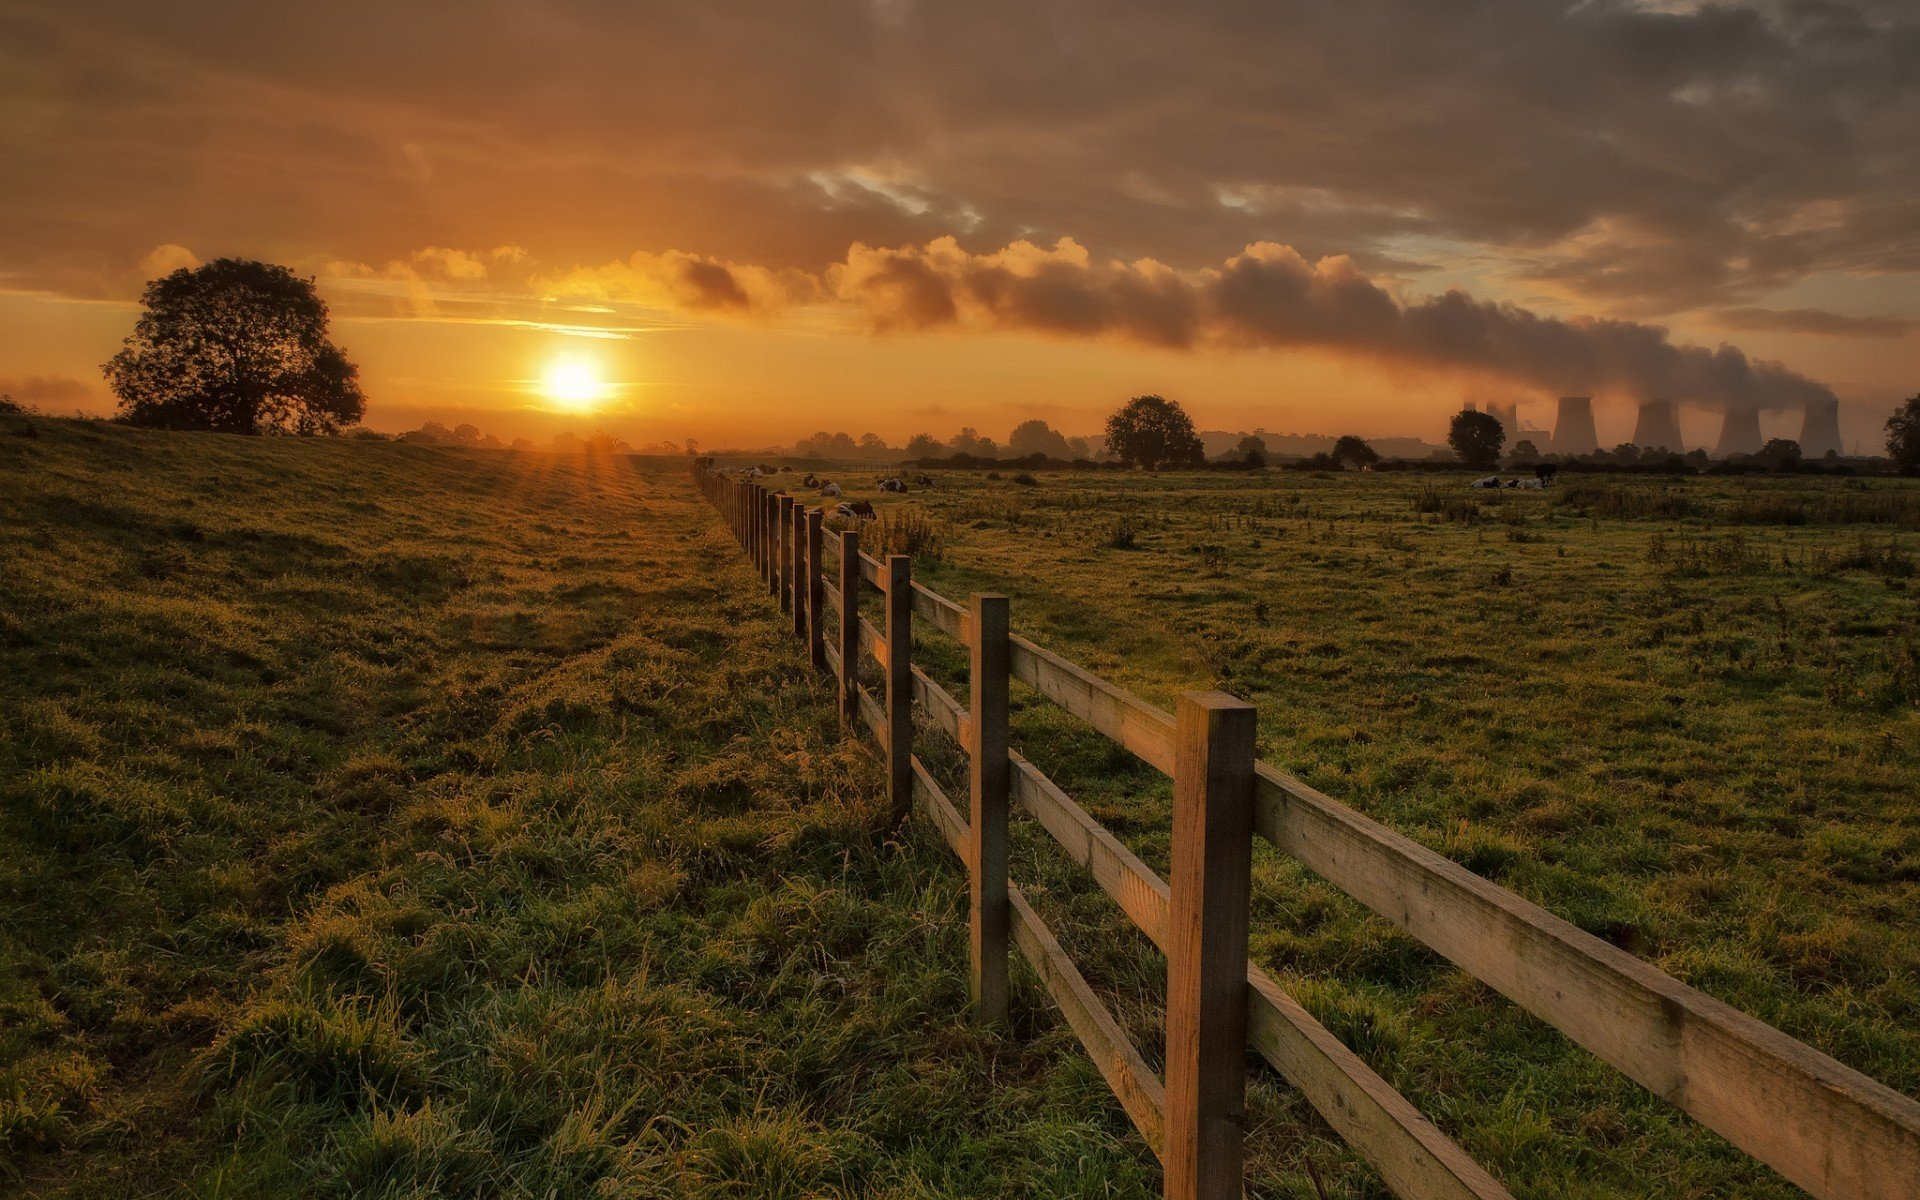 Fence High Resolution Cool Images Radiation Sky Trees Clouds 1920x1200